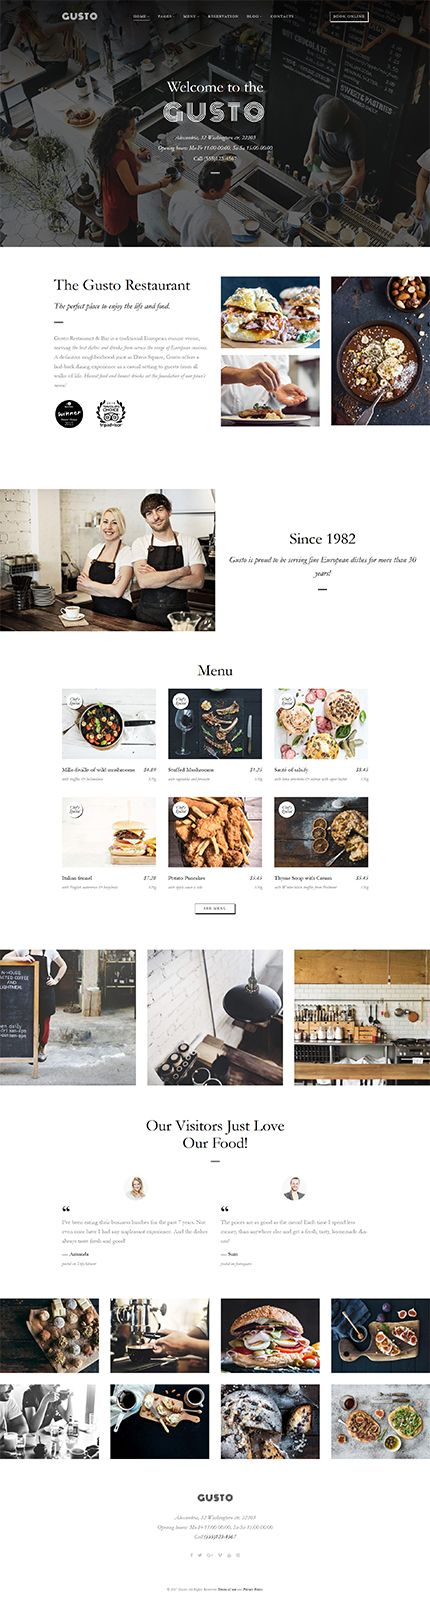 I like how the photos are slightly darker but the background are white (lighter hue). This creates a nice contrast in the website and  is more eye catching to viewers